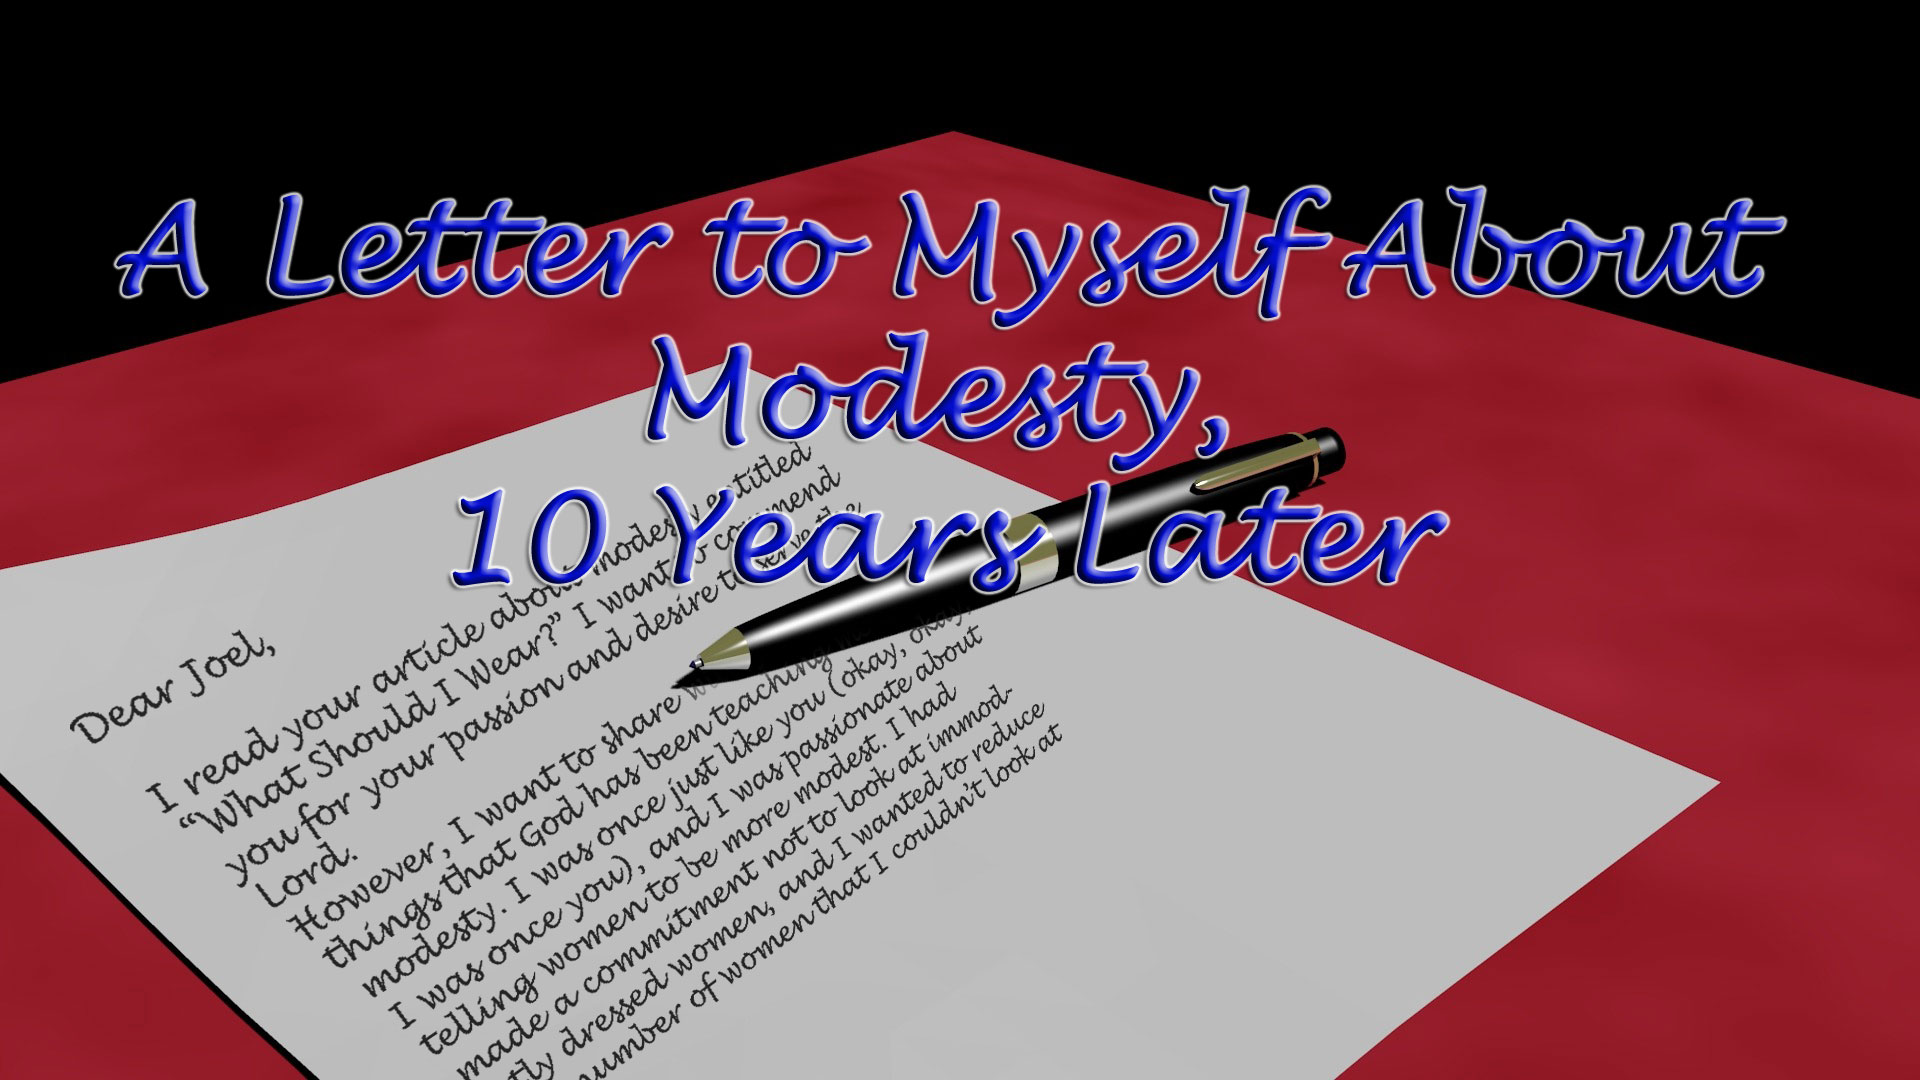 Modesty: A Letter to Myself